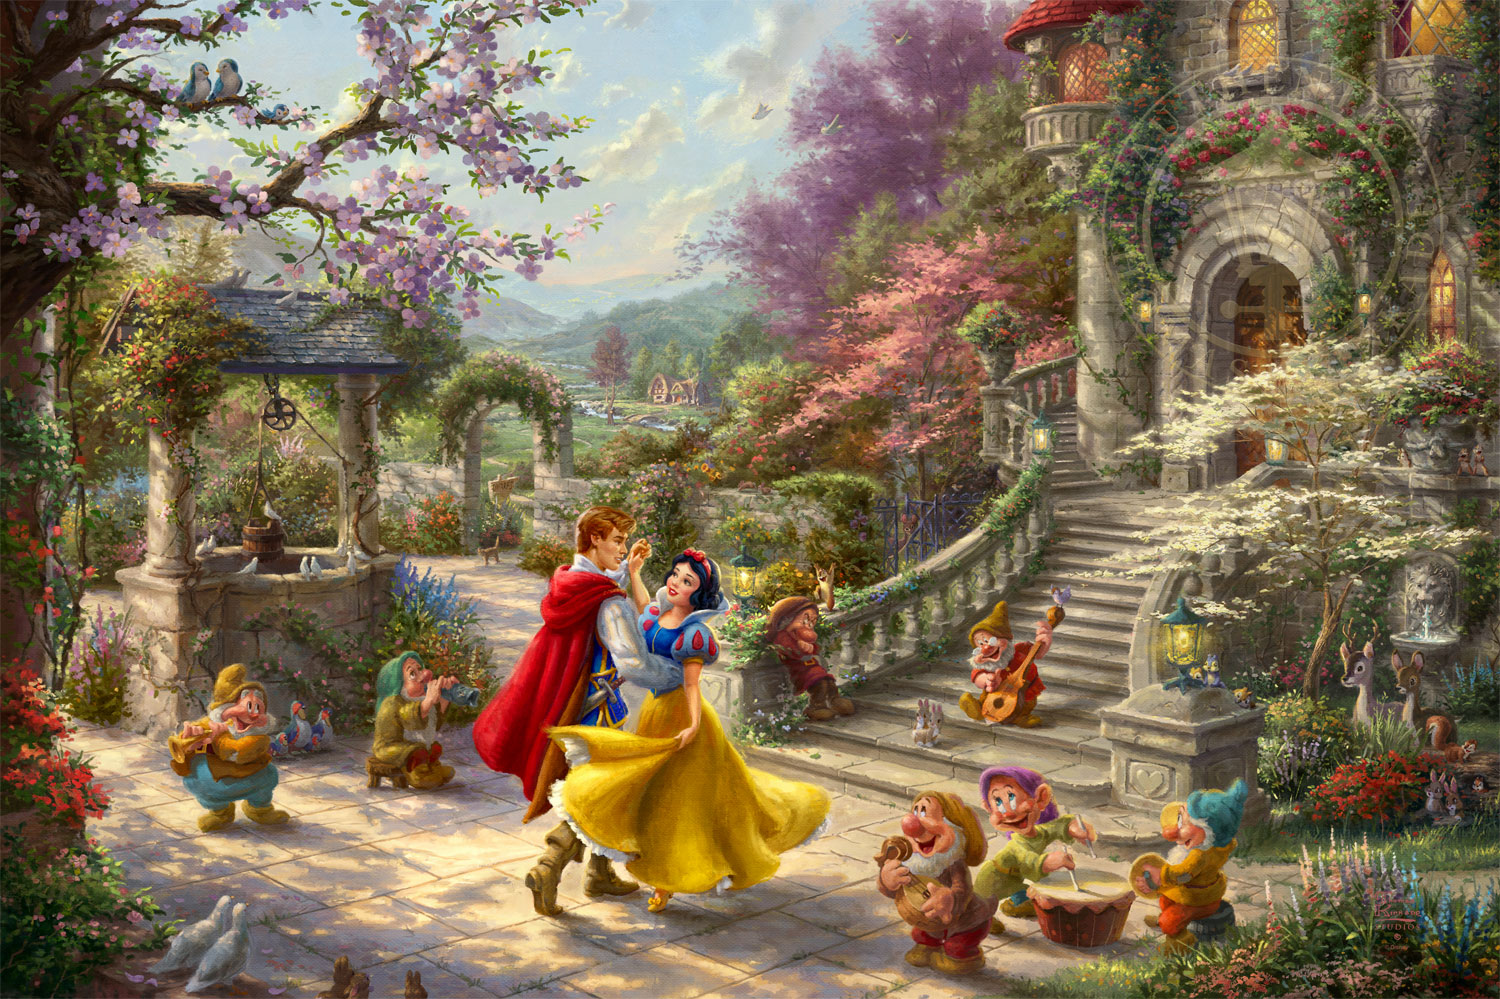 Autumn Love Hd Live Wallpaper Snow White Dancing In The Sunlight Limited Edition Art